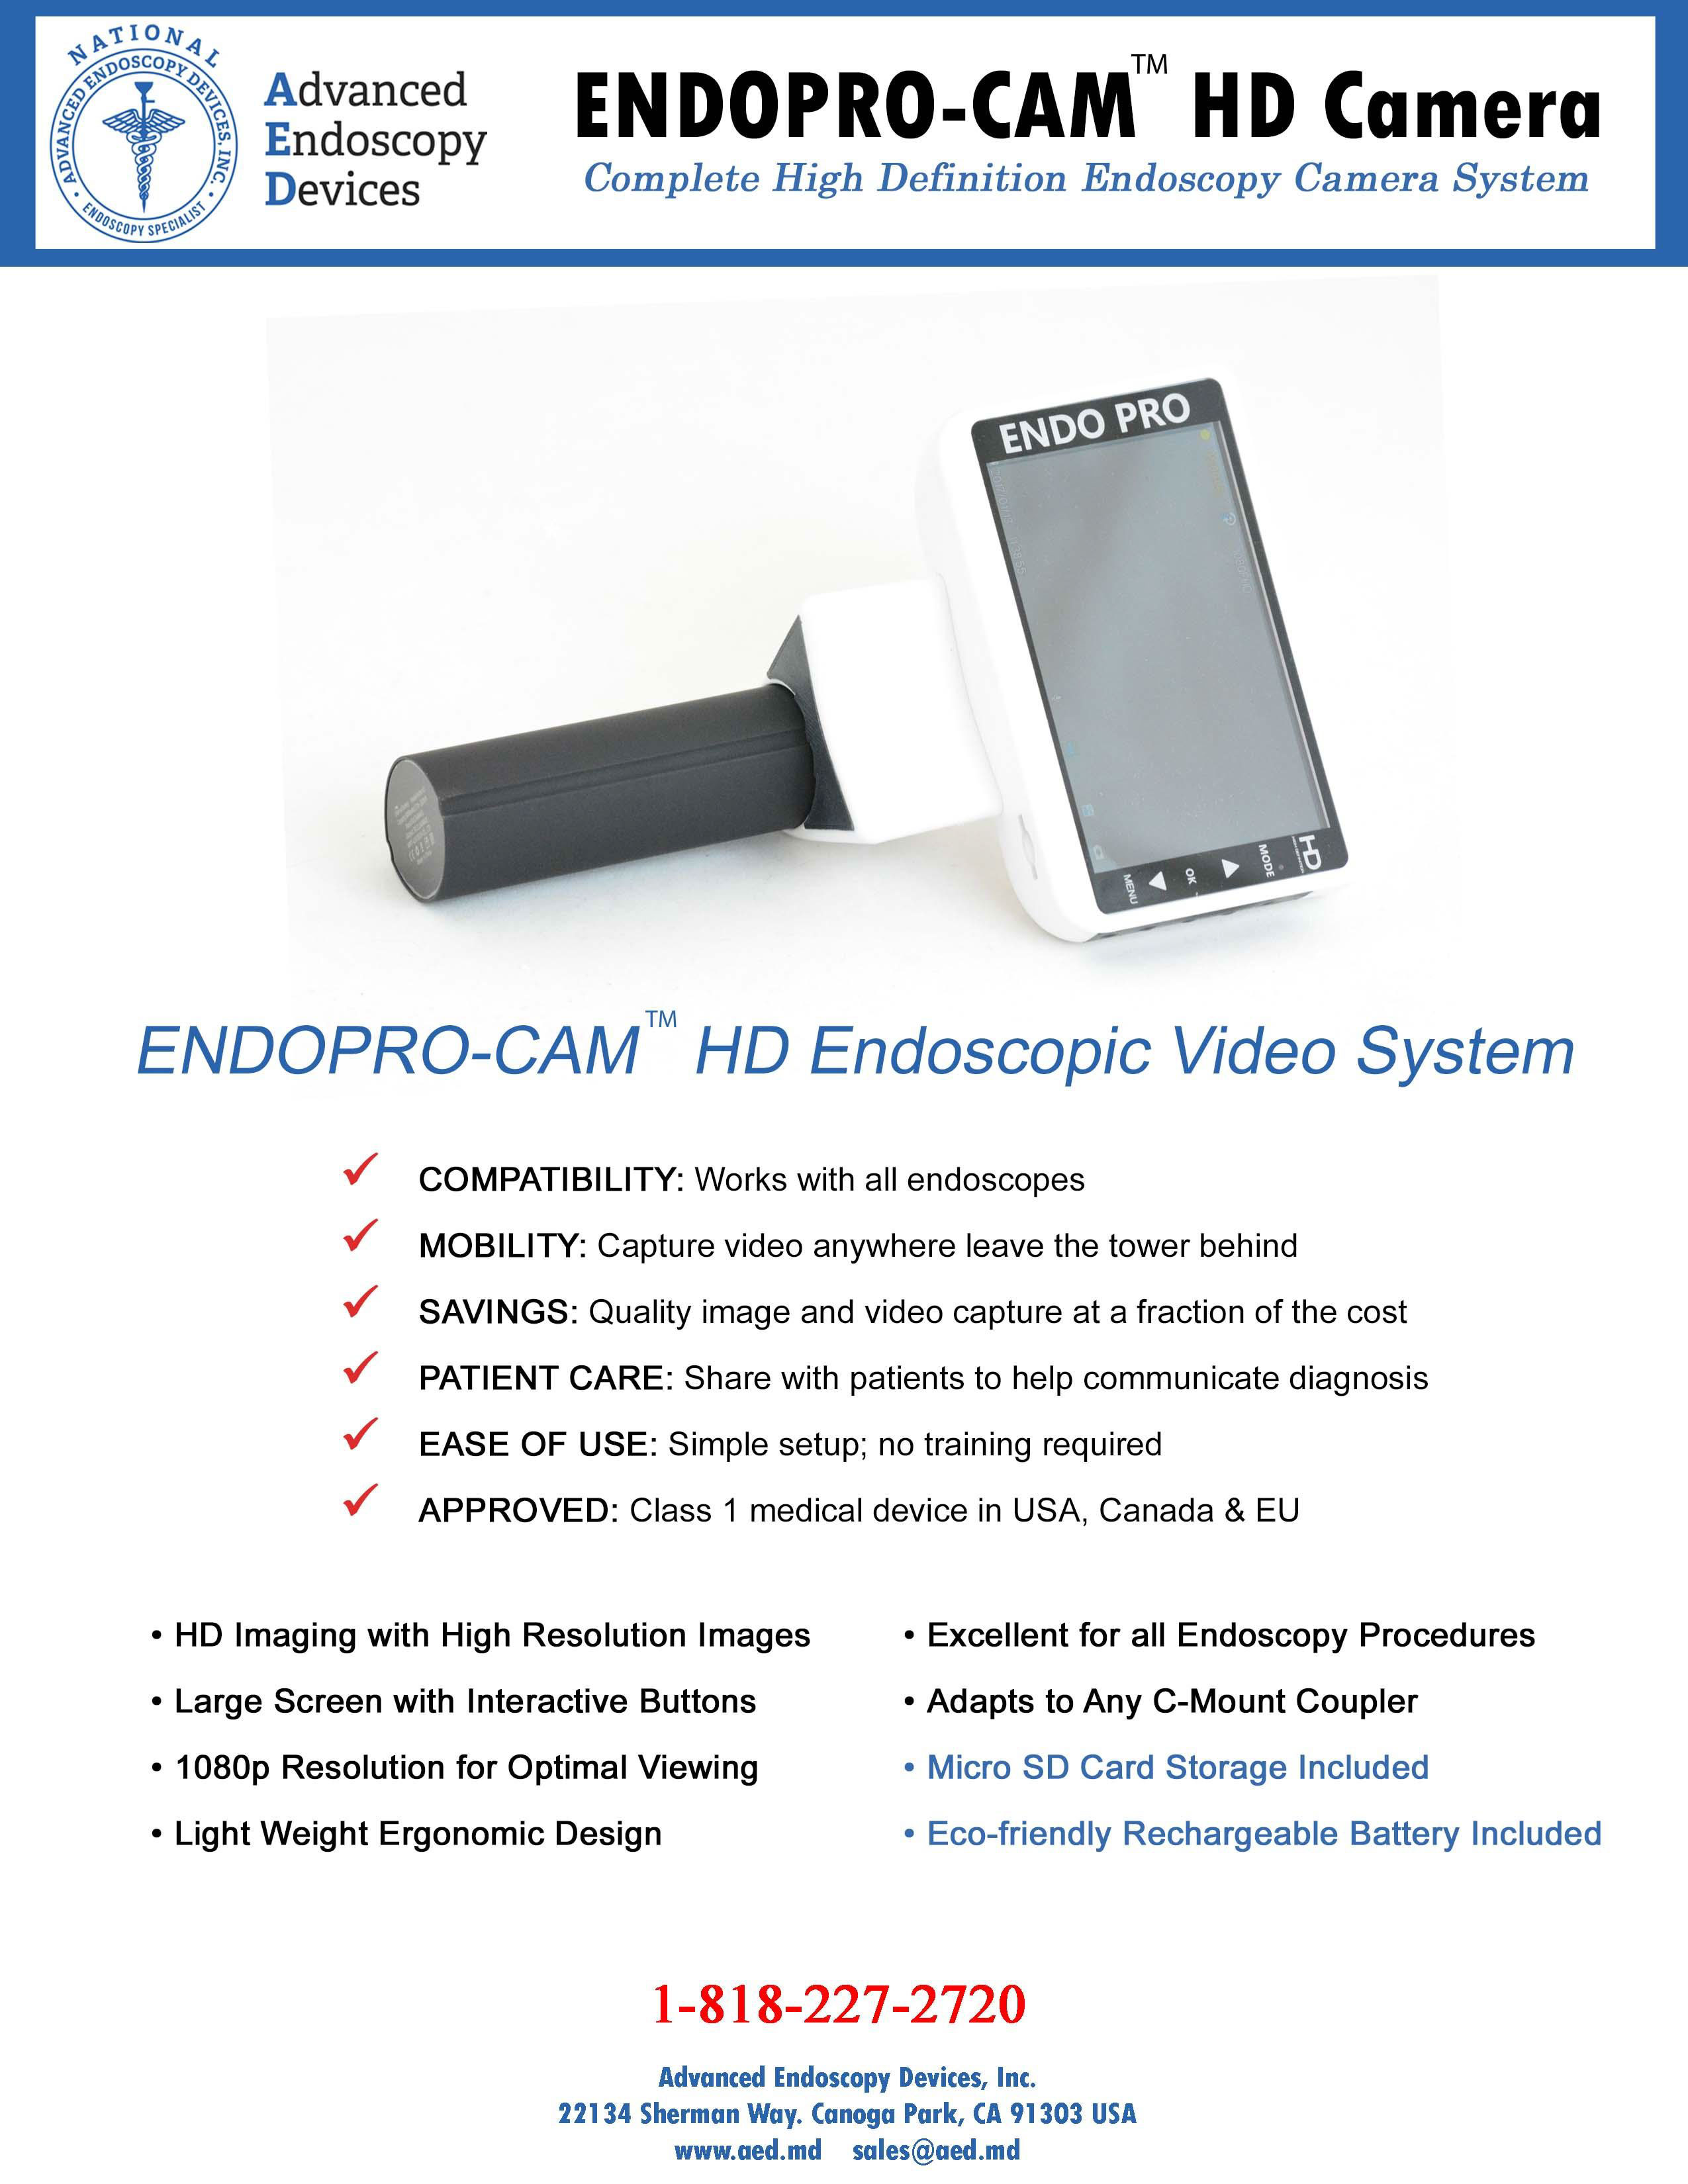 AED ENDOPRO-CAM® Product Page